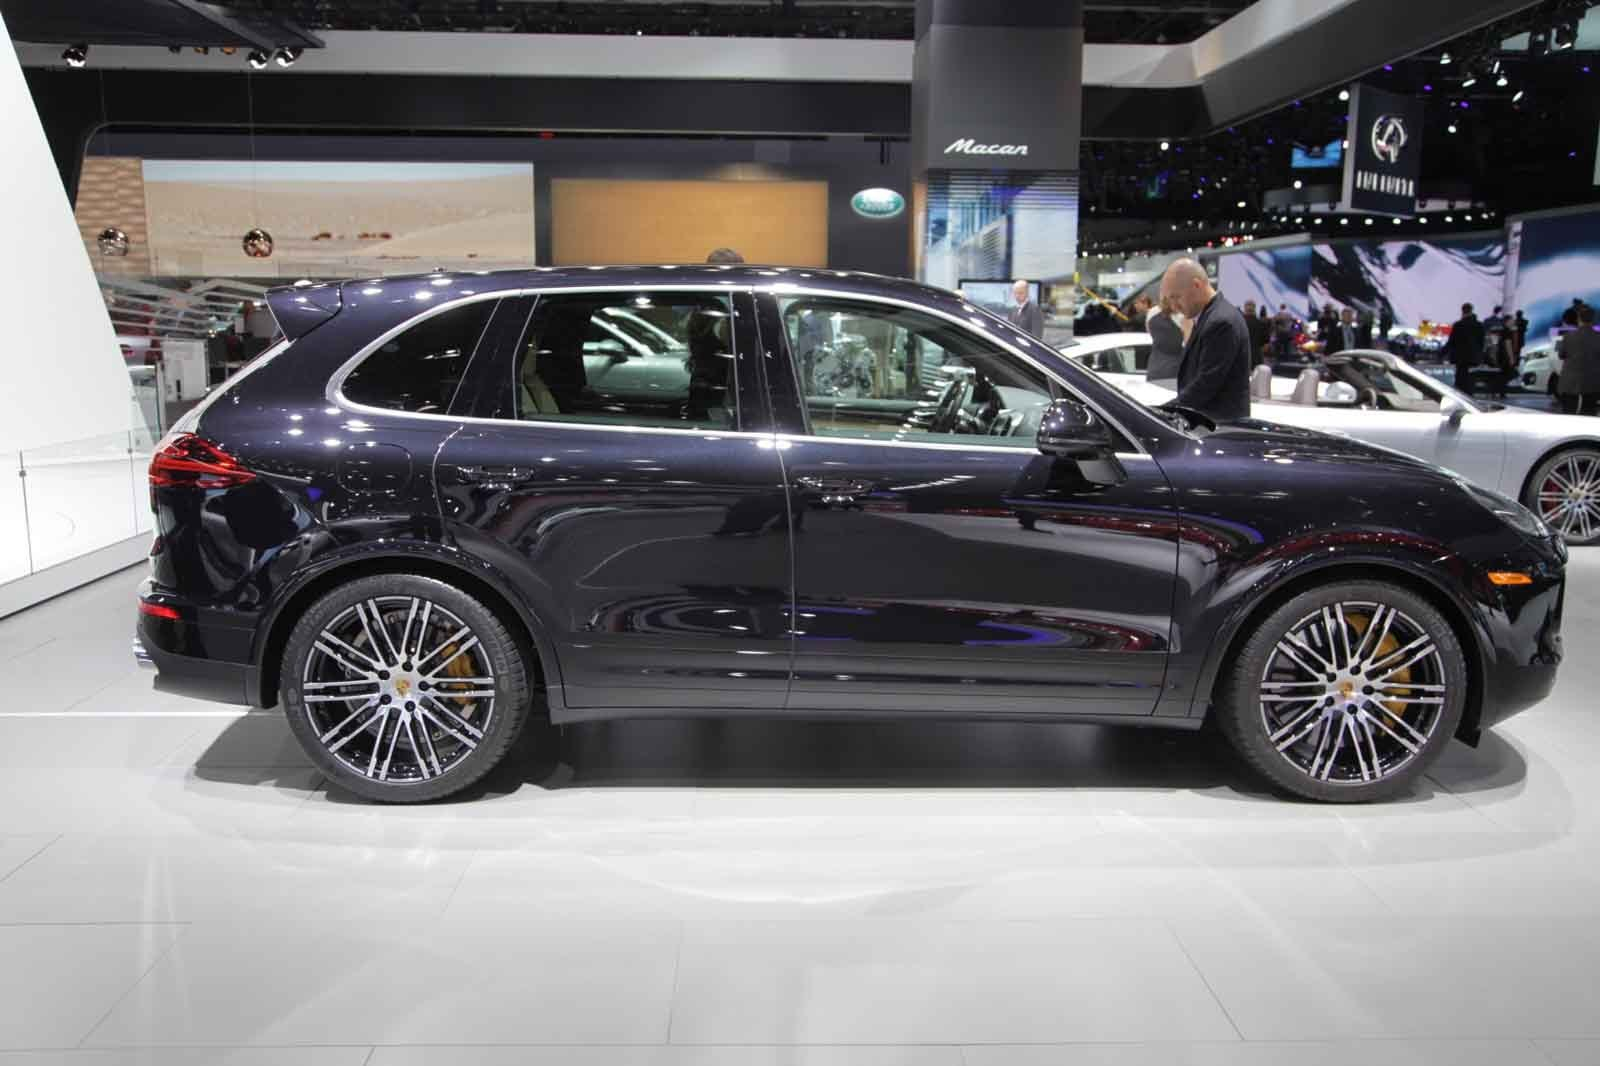 2016 porsche cayenne turbo s picture 612735 car review top speed. Black Bedroom Furniture Sets. Home Design Ideas